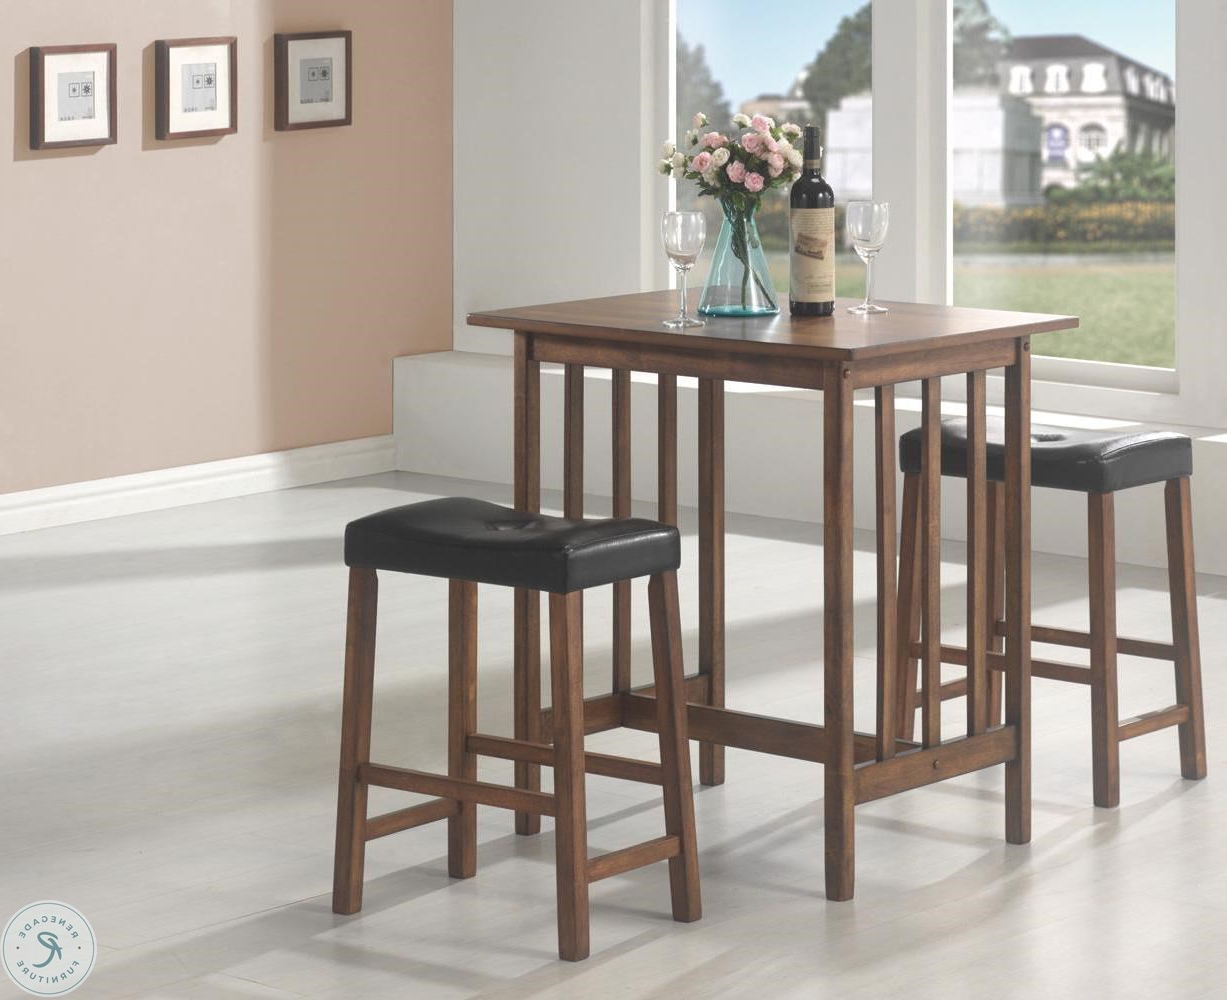 Most Popular Penelope 3 Piece Counter Height Wood Dining Sets Inside Black 3 Pcs Counter Height Dining & Dinette Set 130004 From Coaster (View 10 of 25)